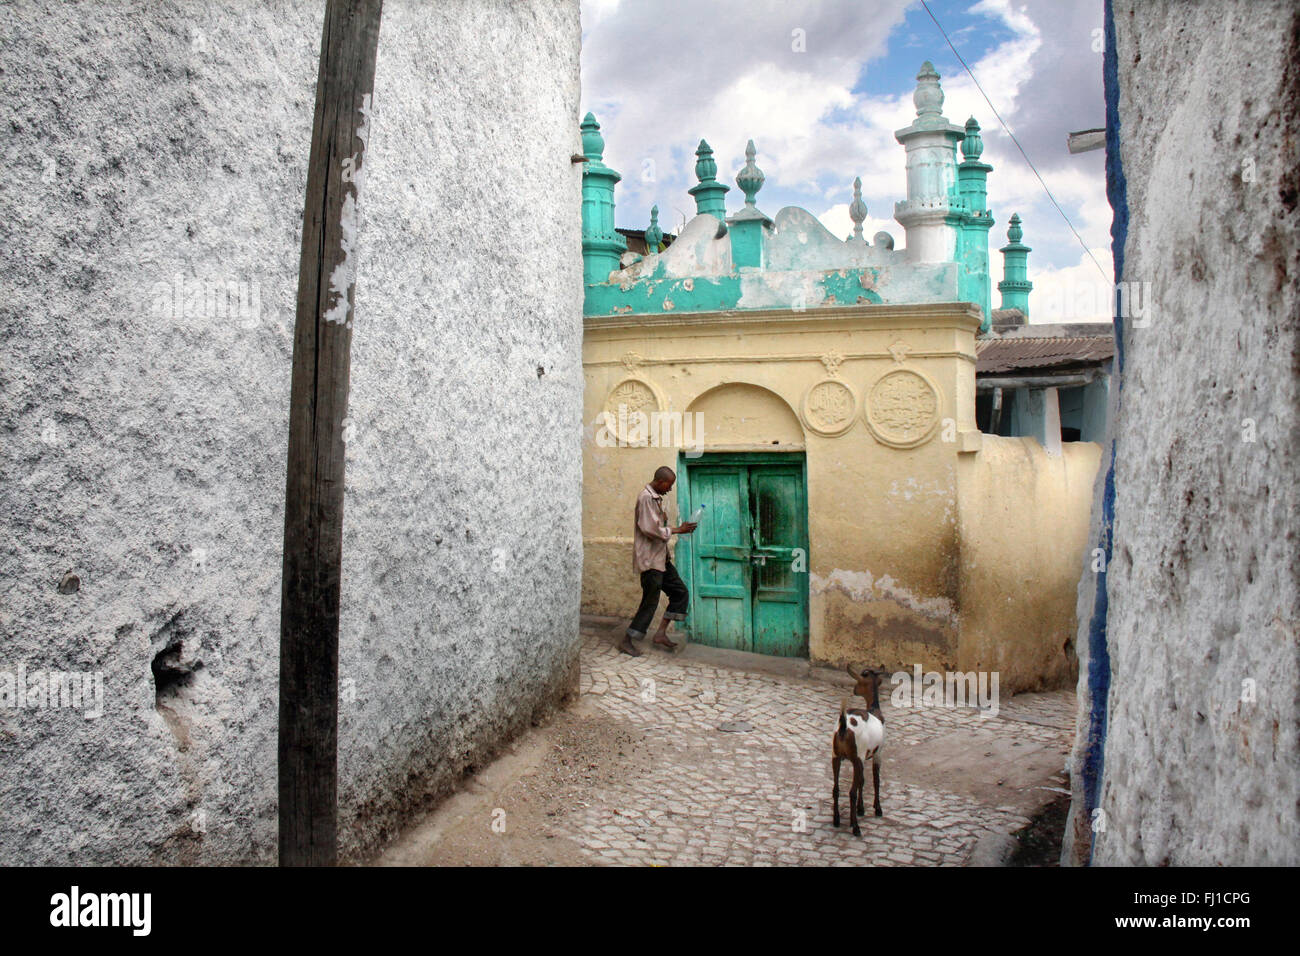 Mosque In The Old Town, Harar, Ethiopia - Stock Image